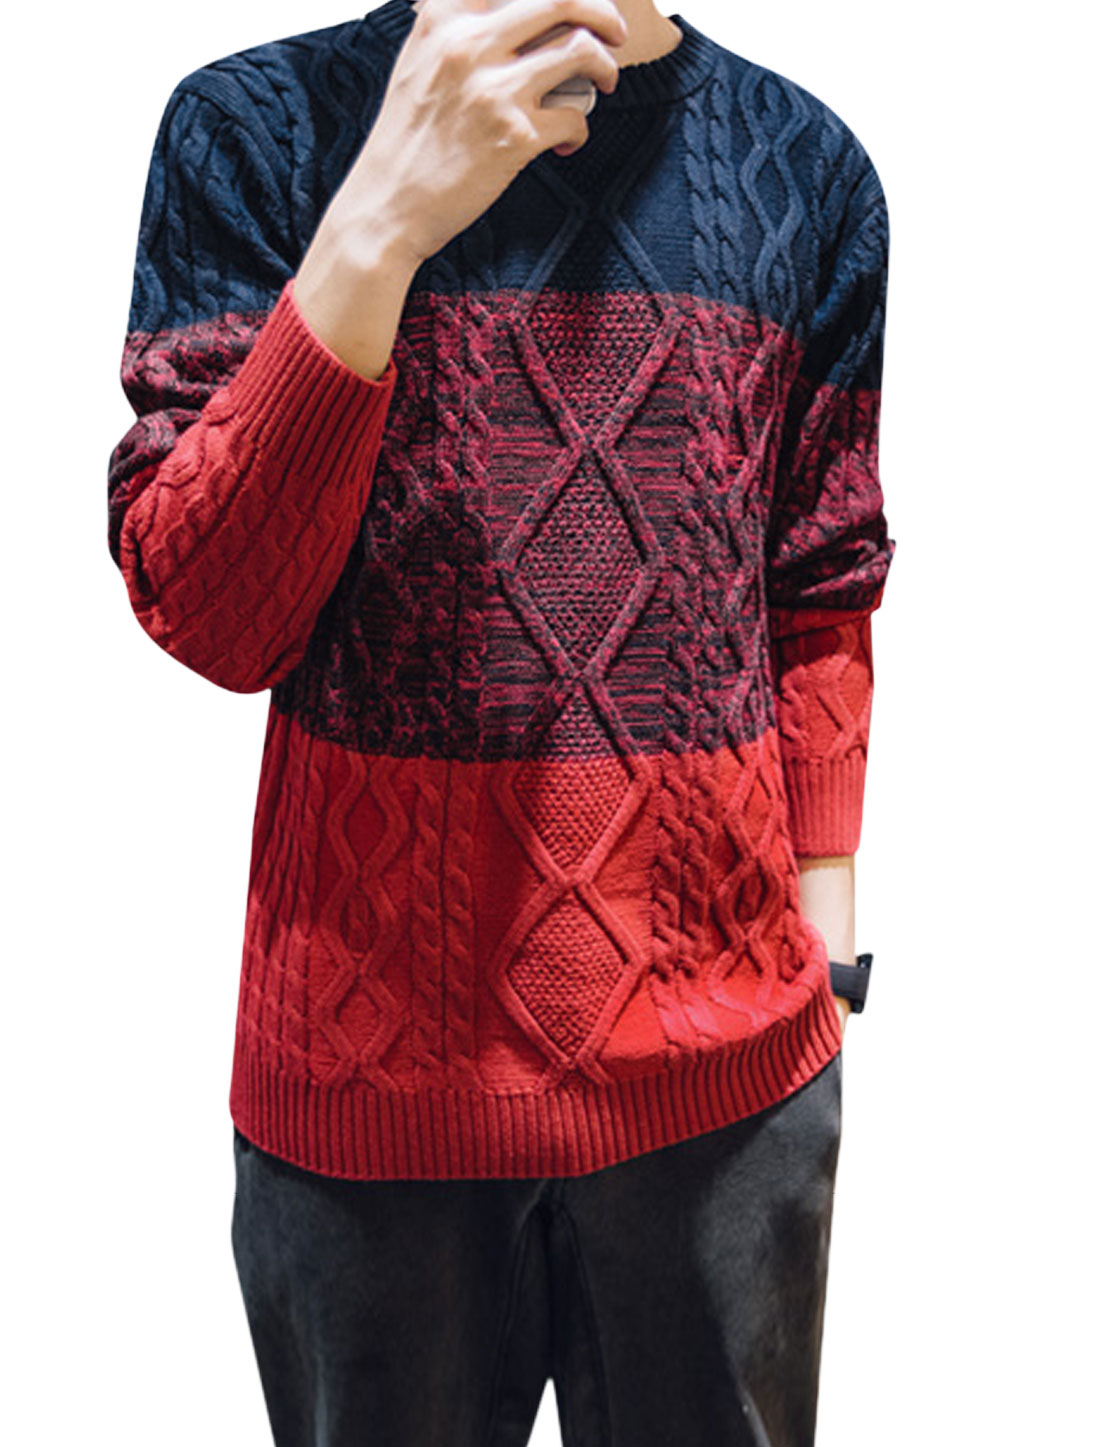 Men Long Sleeve Crew Neck Color Block Sweater Navy Blue Red M